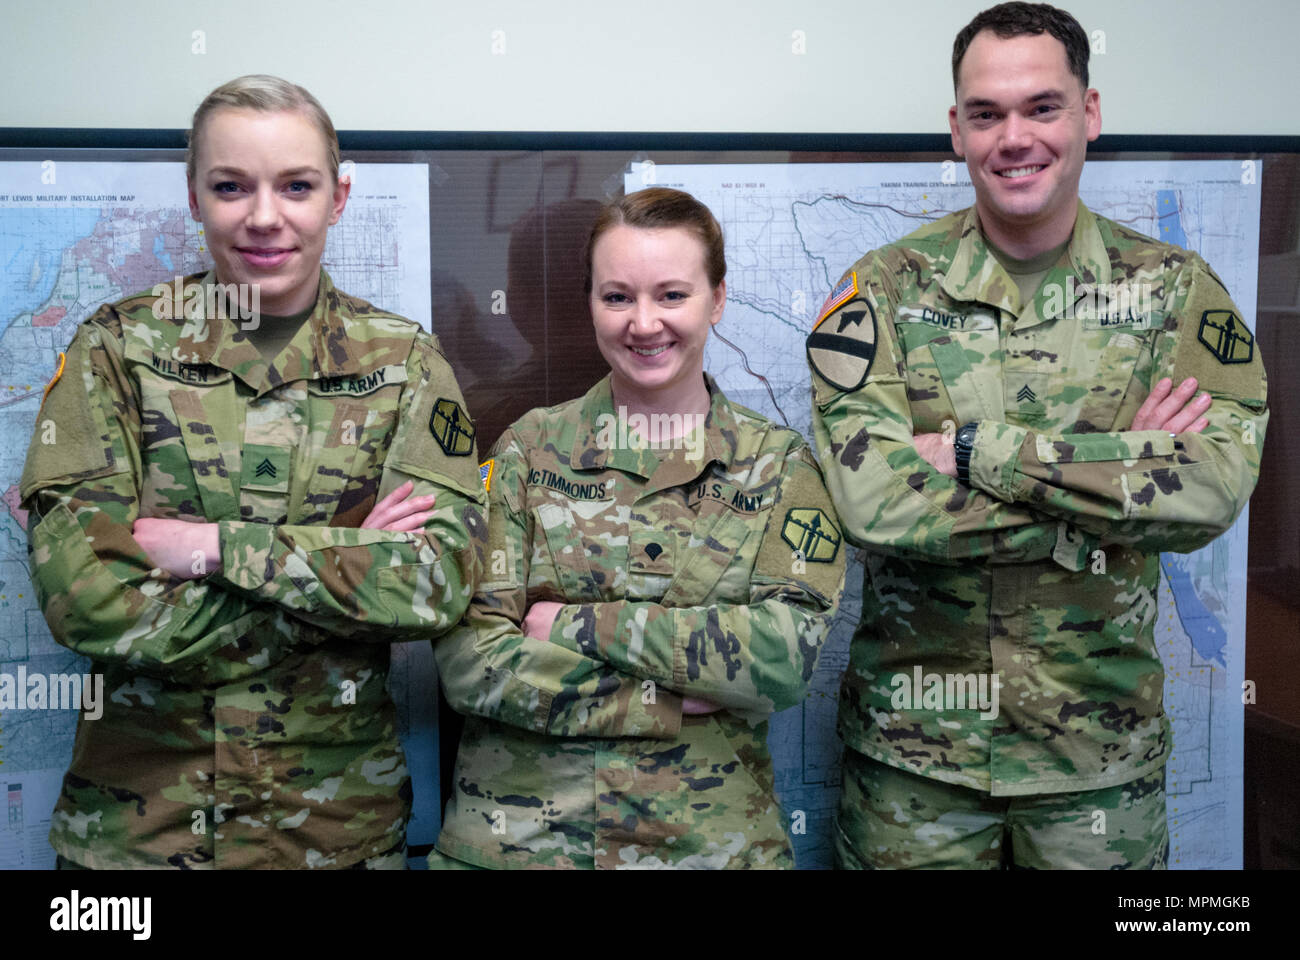 From left: Sgt. Morgan T. Wilken, Spc. Tara M. McTimmonds, Sgt. Noel A. Covey, pose for a photograph at 301st Maneuver Enhancement Brigade (MEB) headquarters, Joint Base Lewis-McChord, Wash. February 12, 2017. Geospatial engineers produce the maps that will support the commander's next mission, and are a vital component of the Army, Army Reserve, and Total Force (U.S. Army Reserve photo by Spc. Sean Harding/Released). - Stock Image